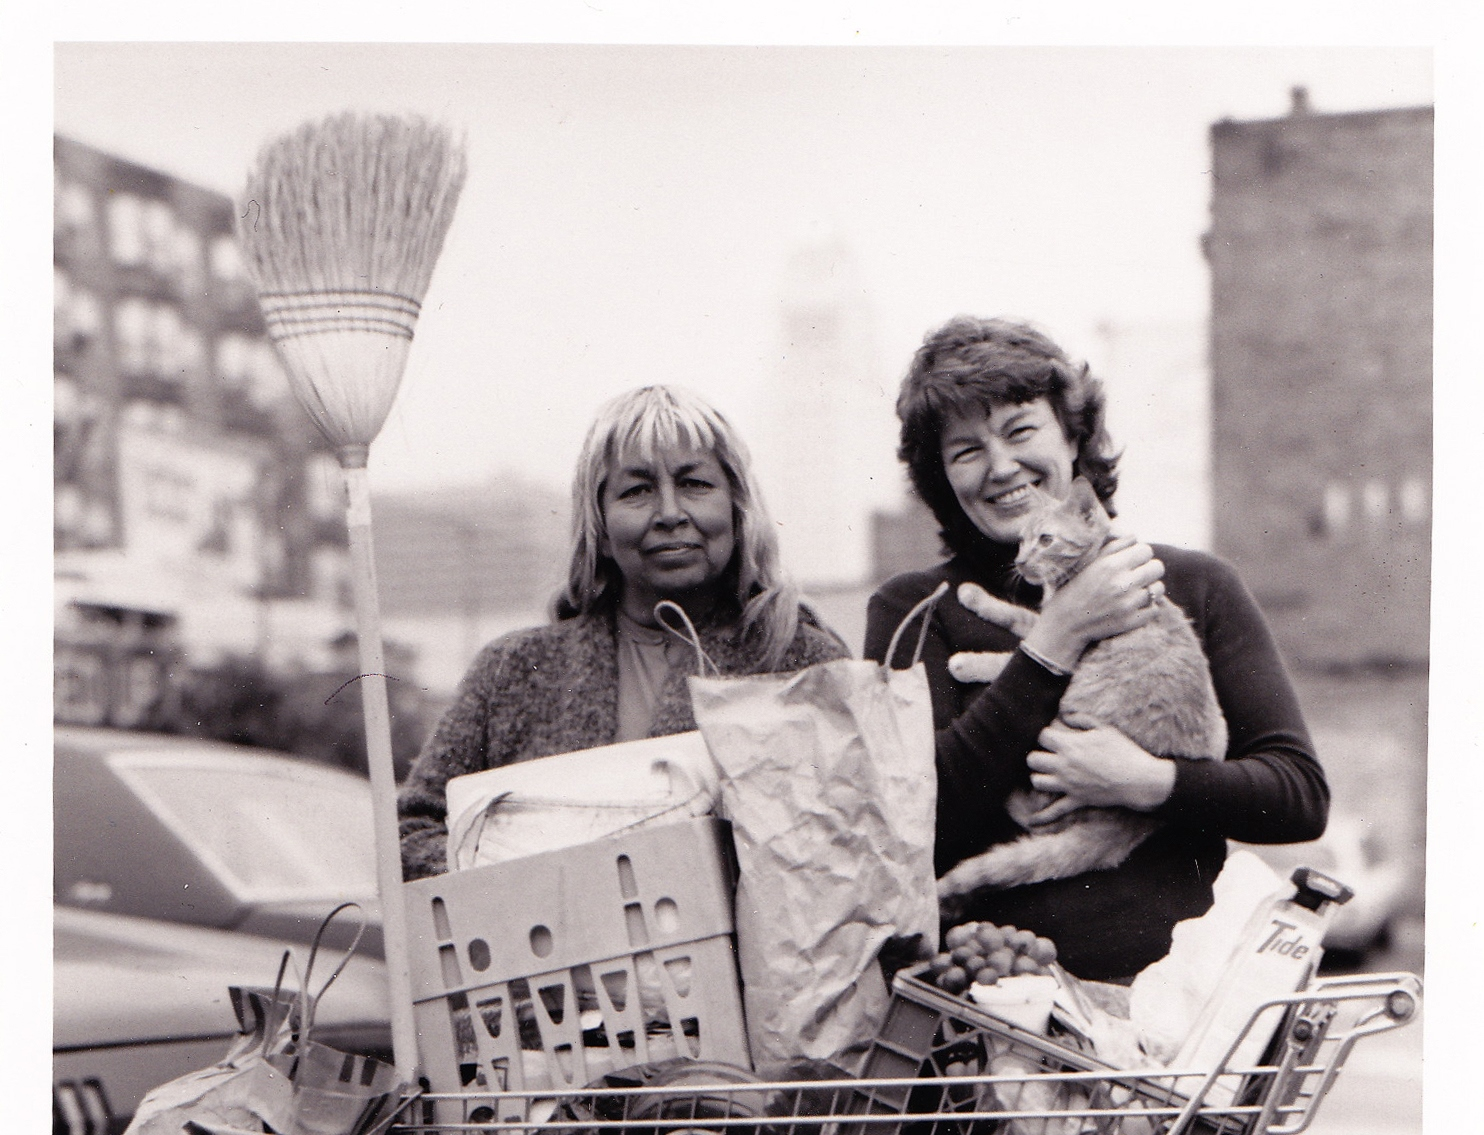 Jill Halverson, a former Peace Corps volunteer, was working on Skid Row as an outreach worker.